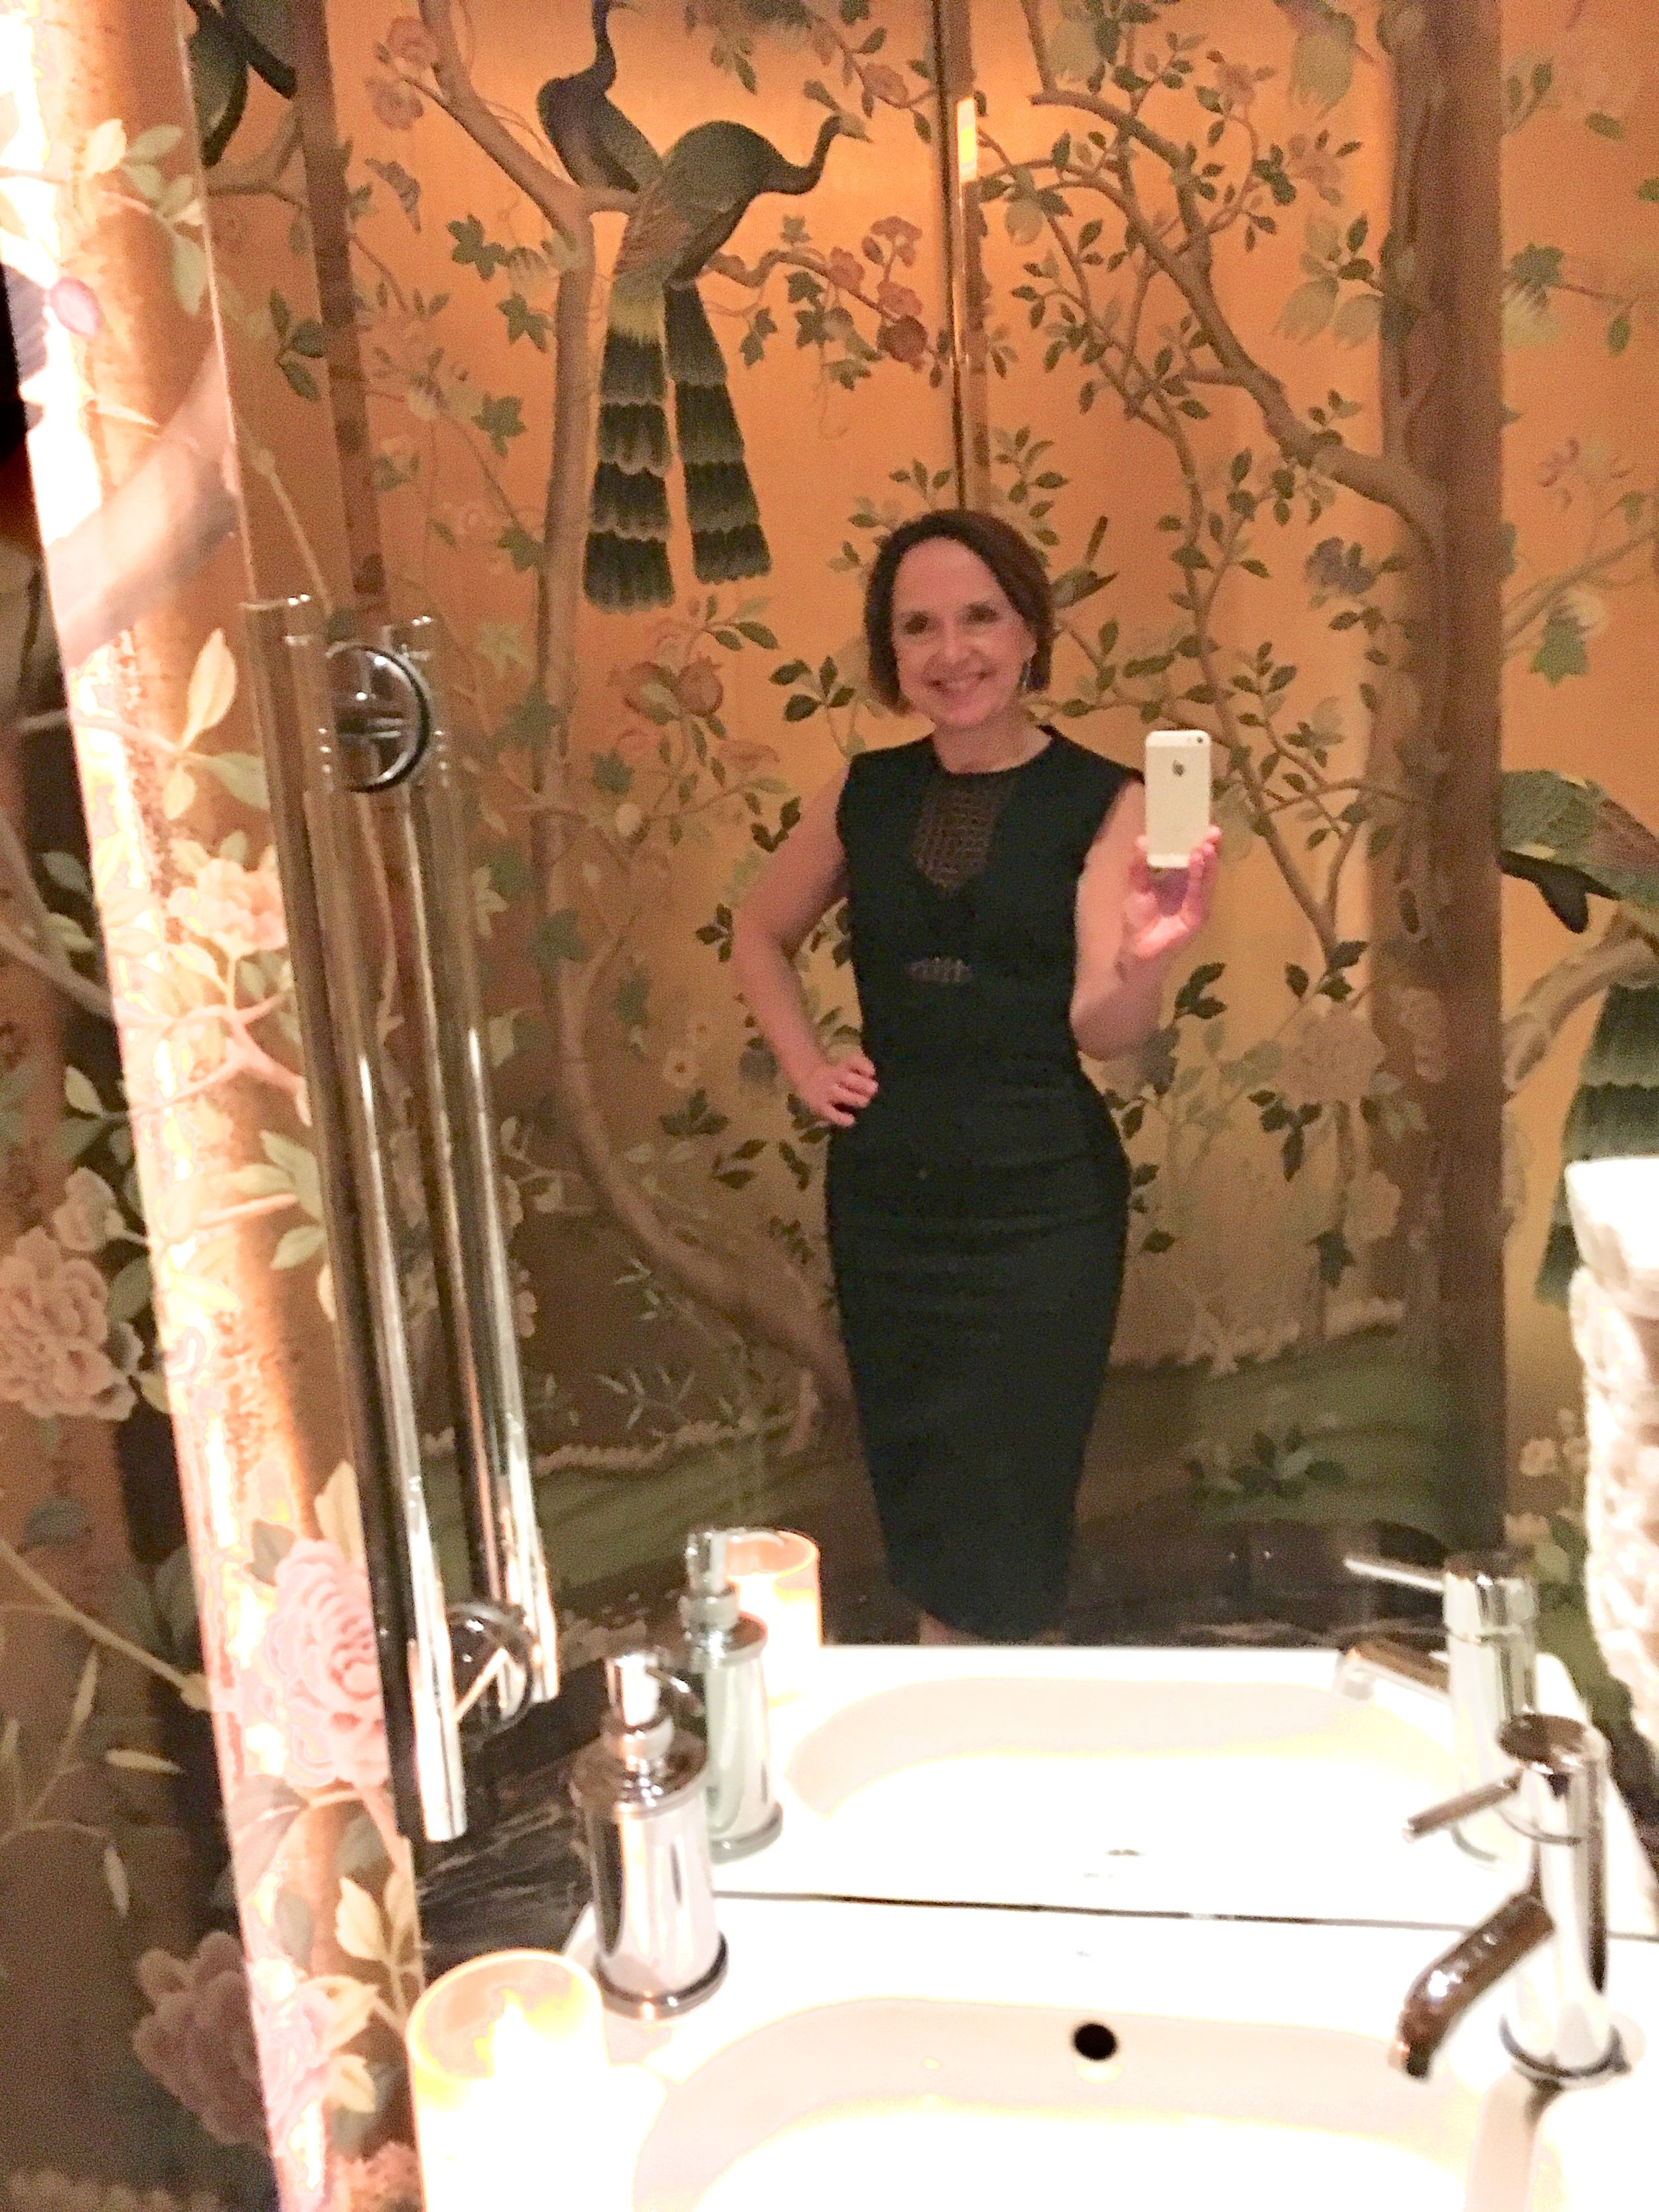 Me in my Victoria Beckham LBD at Isabel restaurant in London – the toilets, because look at them!